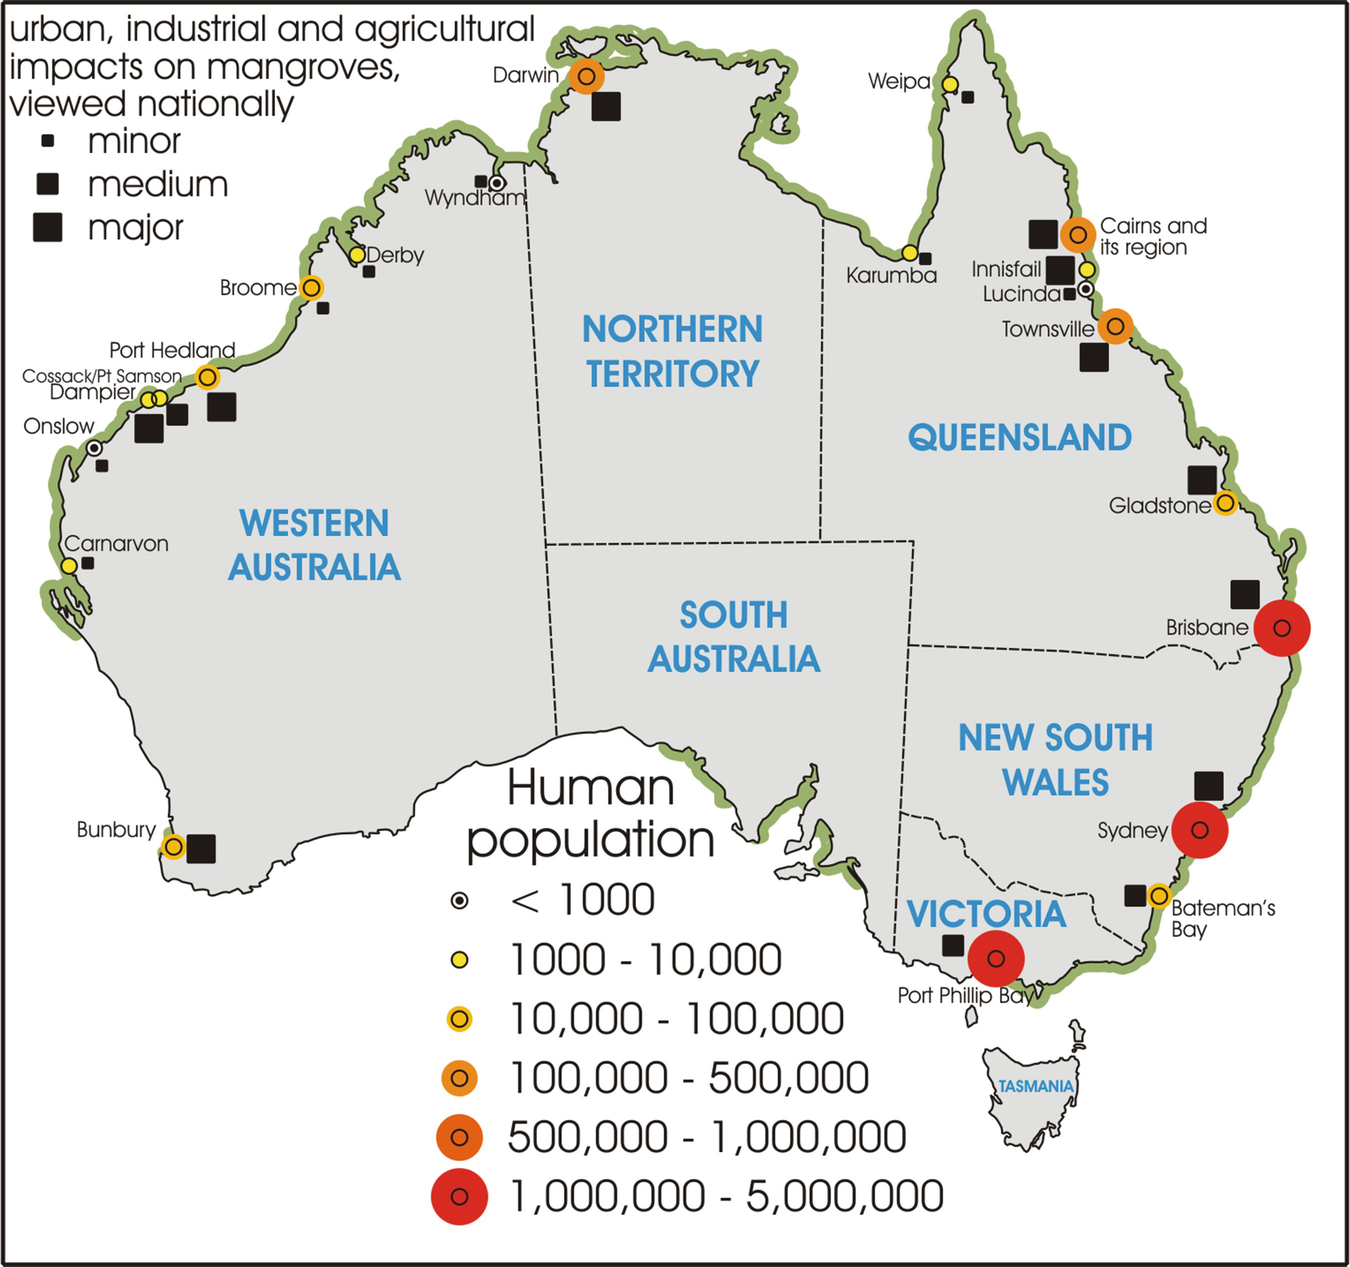 Australian Mangroves: Anthropogenic Impacts by Industry